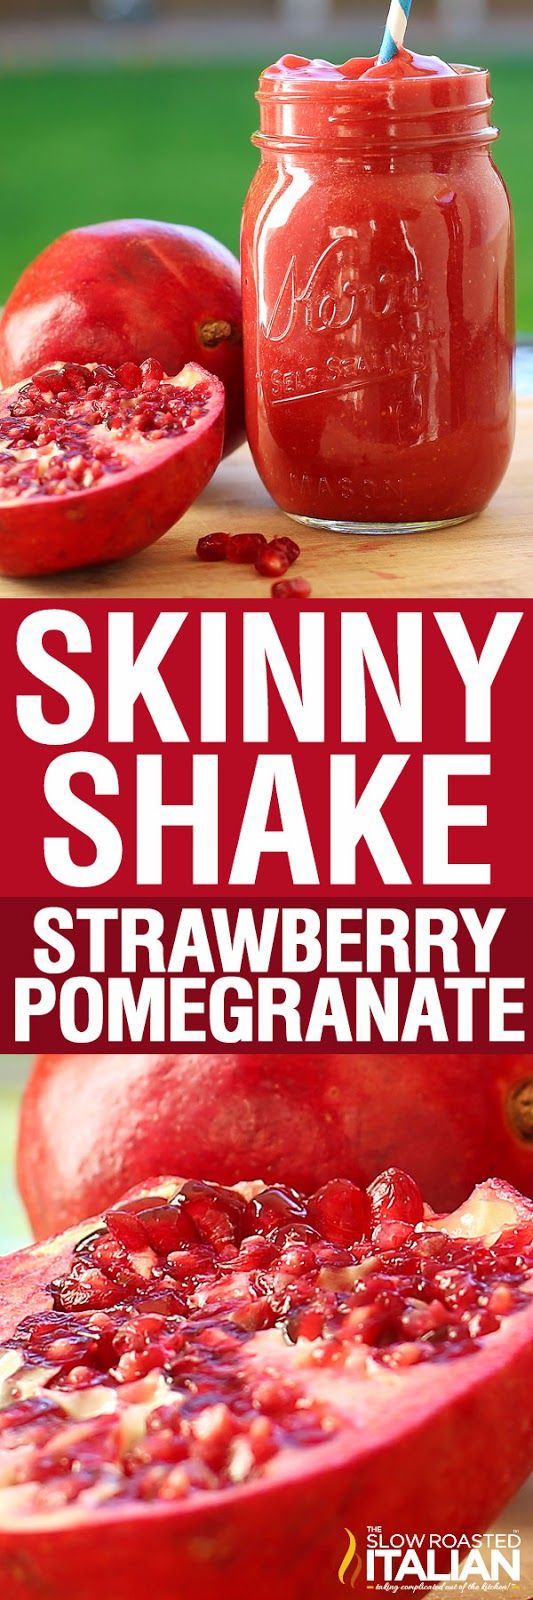 Detox with Skinny Shakes! A tasty smoothie that will knock your socks off. Skinny Shake is a simple recipe for a scrumtious strawberry pomegranate smoothie enjoyed once a day mid morning. I love smoothies and the flavors here are insanely delicious. The entire family loves it and it kick starts fat burning to boot. Sign me up!